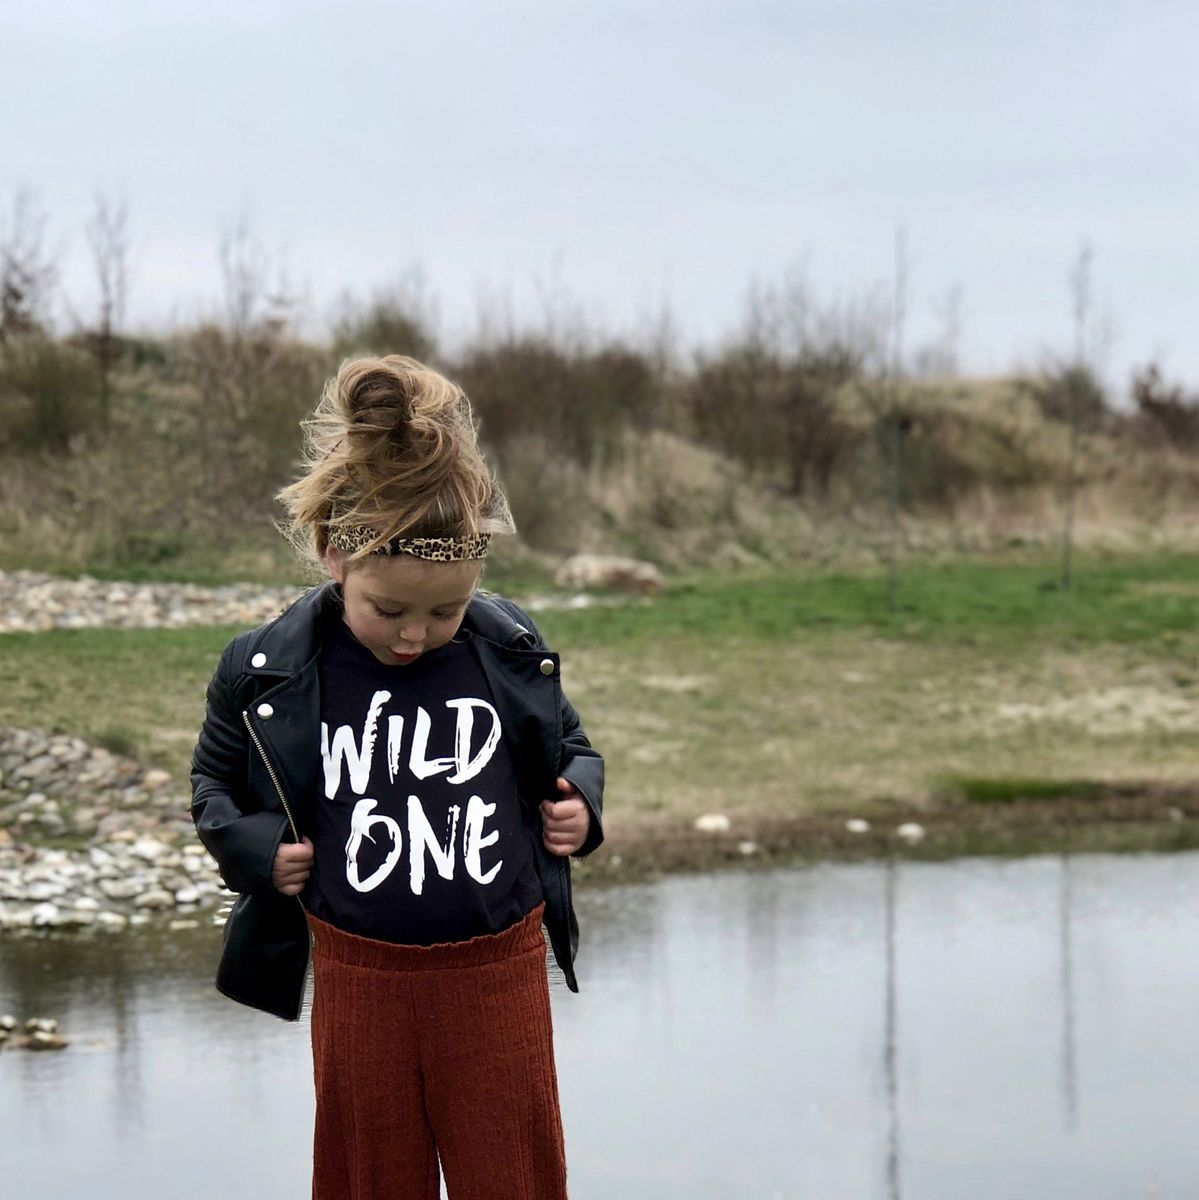 Wild One Black & White Kids T-Shirt (various sizes) - product images  of